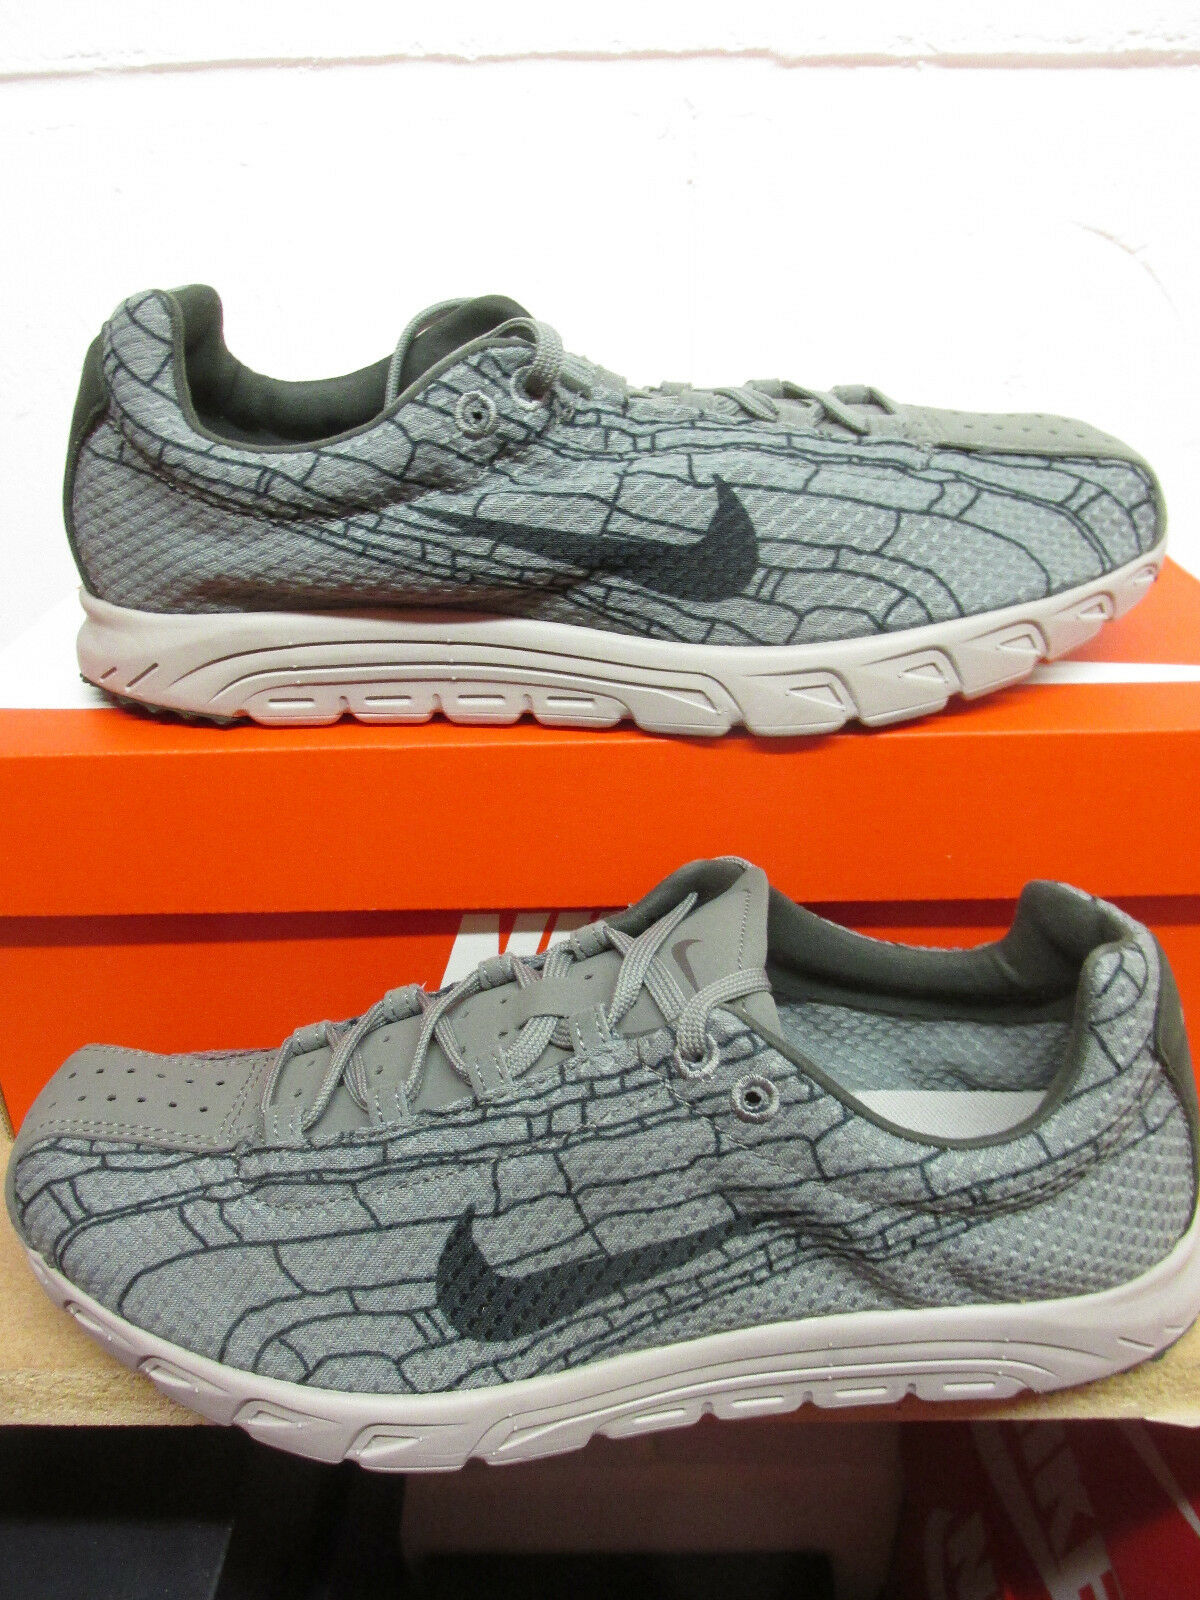 NIke Trainers Mayfly  Uomo Running Trainers NIke 310703 003 Sneakers Schuhes 816d99